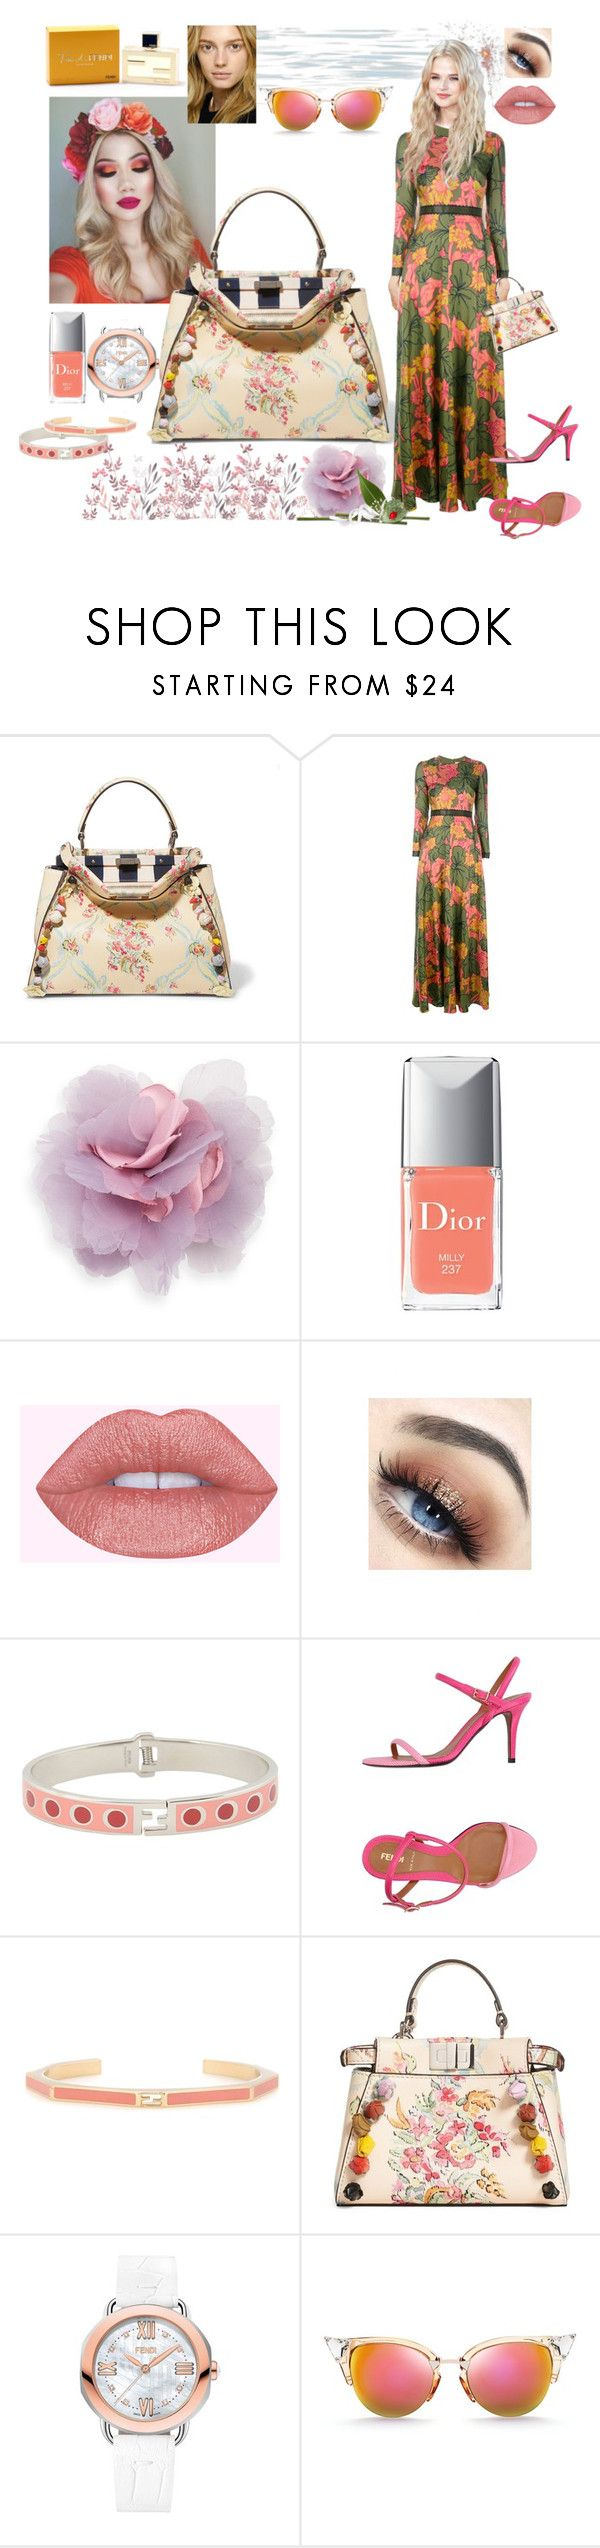 """""""Flower mix for Fendi"""" by lizzylima ❤ liked on Polyvore featuring Fendi, Roksanda, Cara, Christian Dior, flower, summerstyle and fendi"""